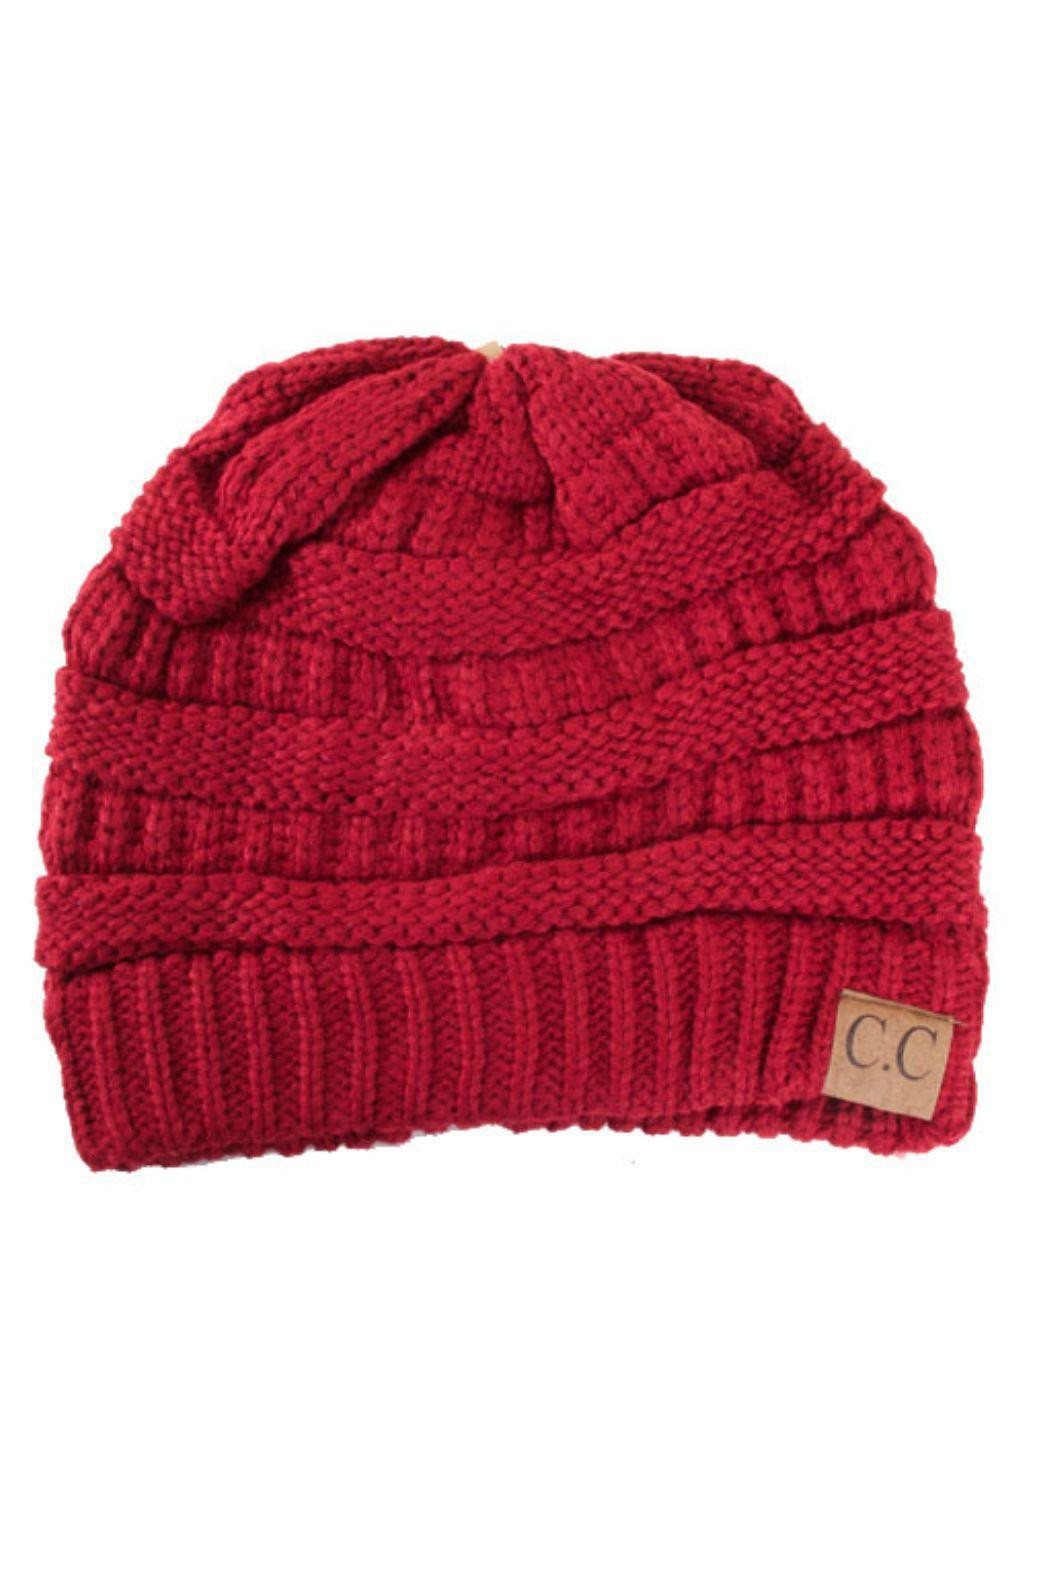 Awesome C C Red Slouch Beanie From Minneapolis by Styletrolley Red Slouchy Beanie Of New 50 Models Red Slouchy Beanie